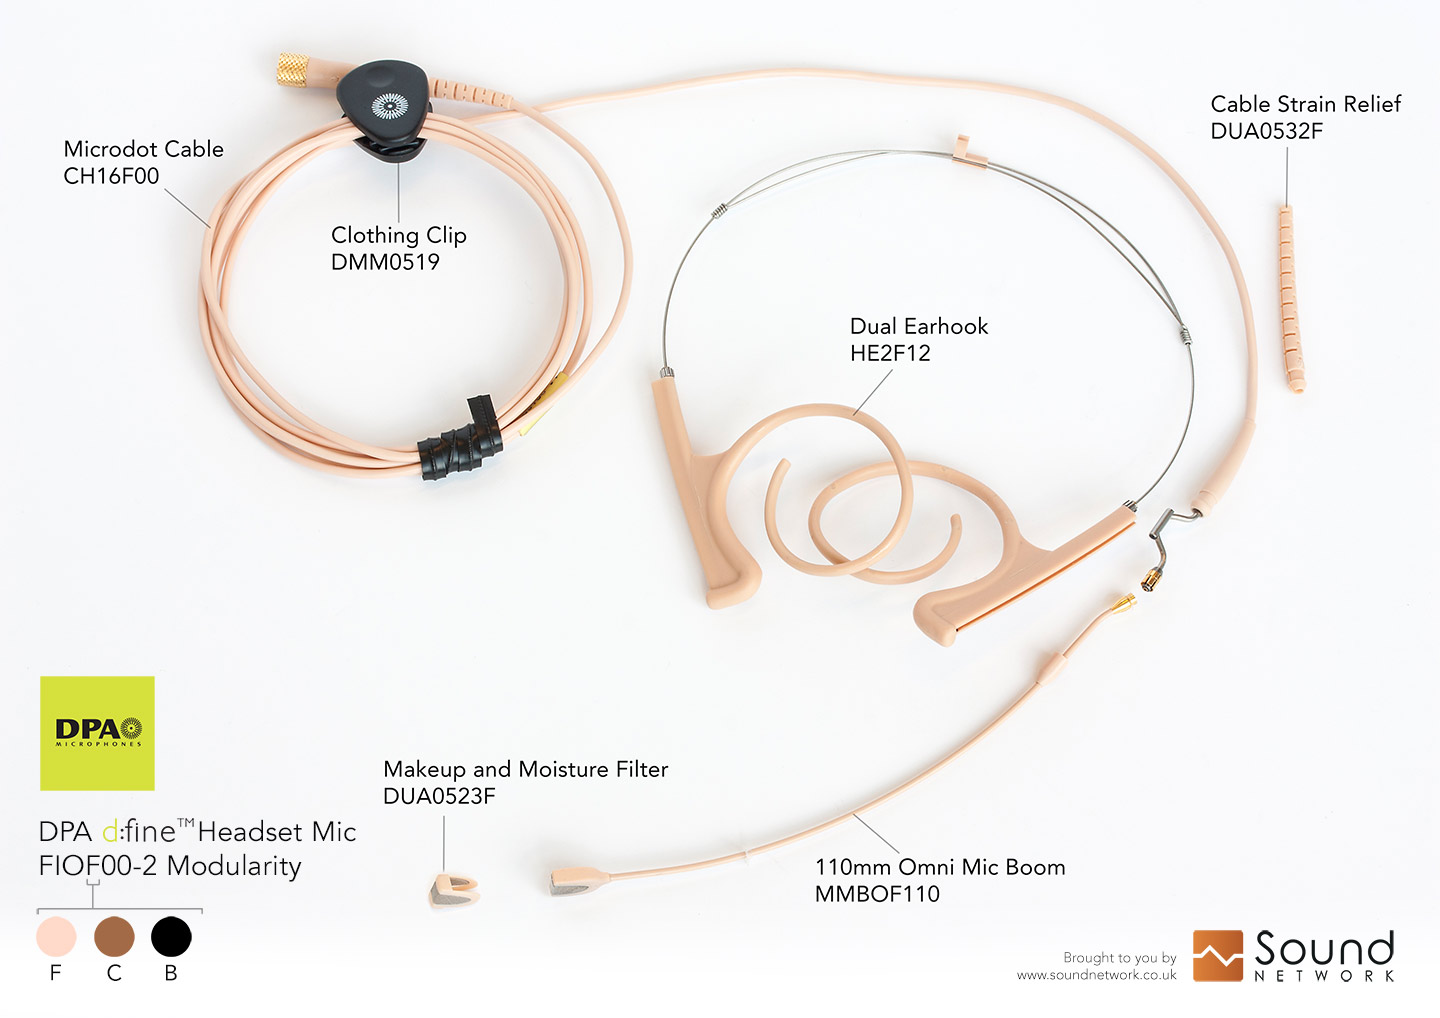 Anatomy of the DPA d:fine™ Headset Microphone